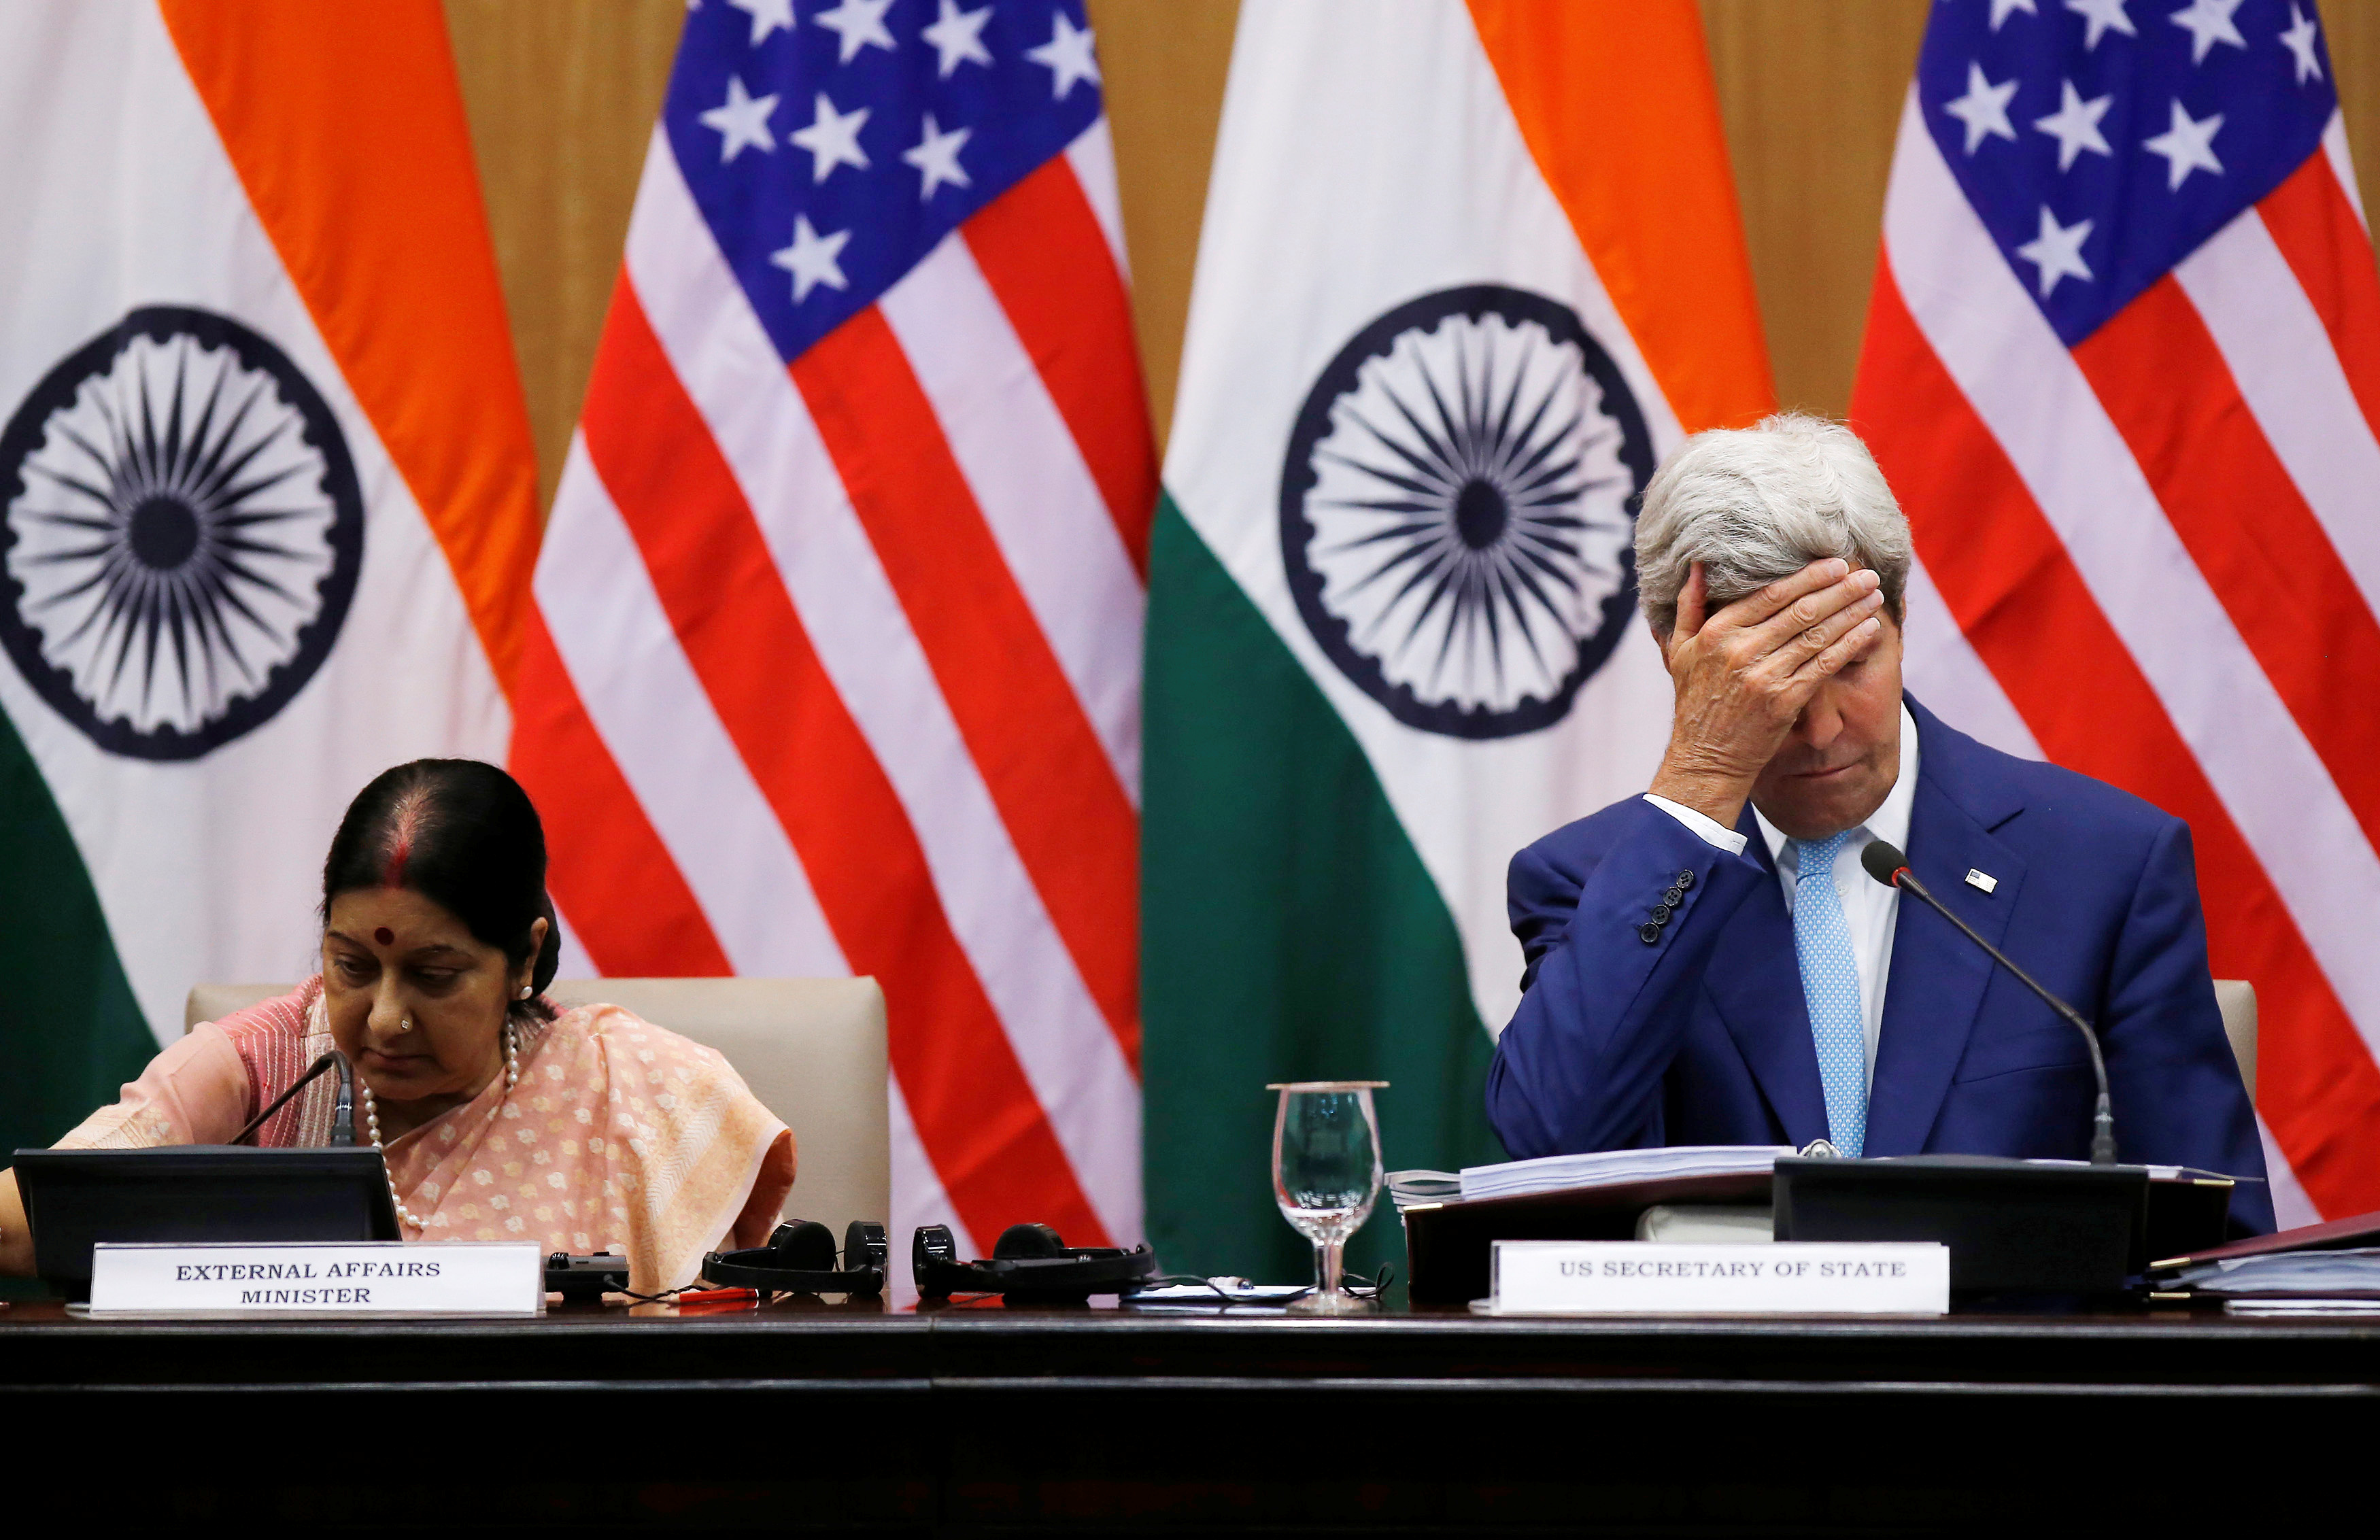 U.S. Secretary of State John Kerry and India's External Affairs Minister Sushma Swaraj during their joint news conference on August 30, 2016 in New Delhi, India.